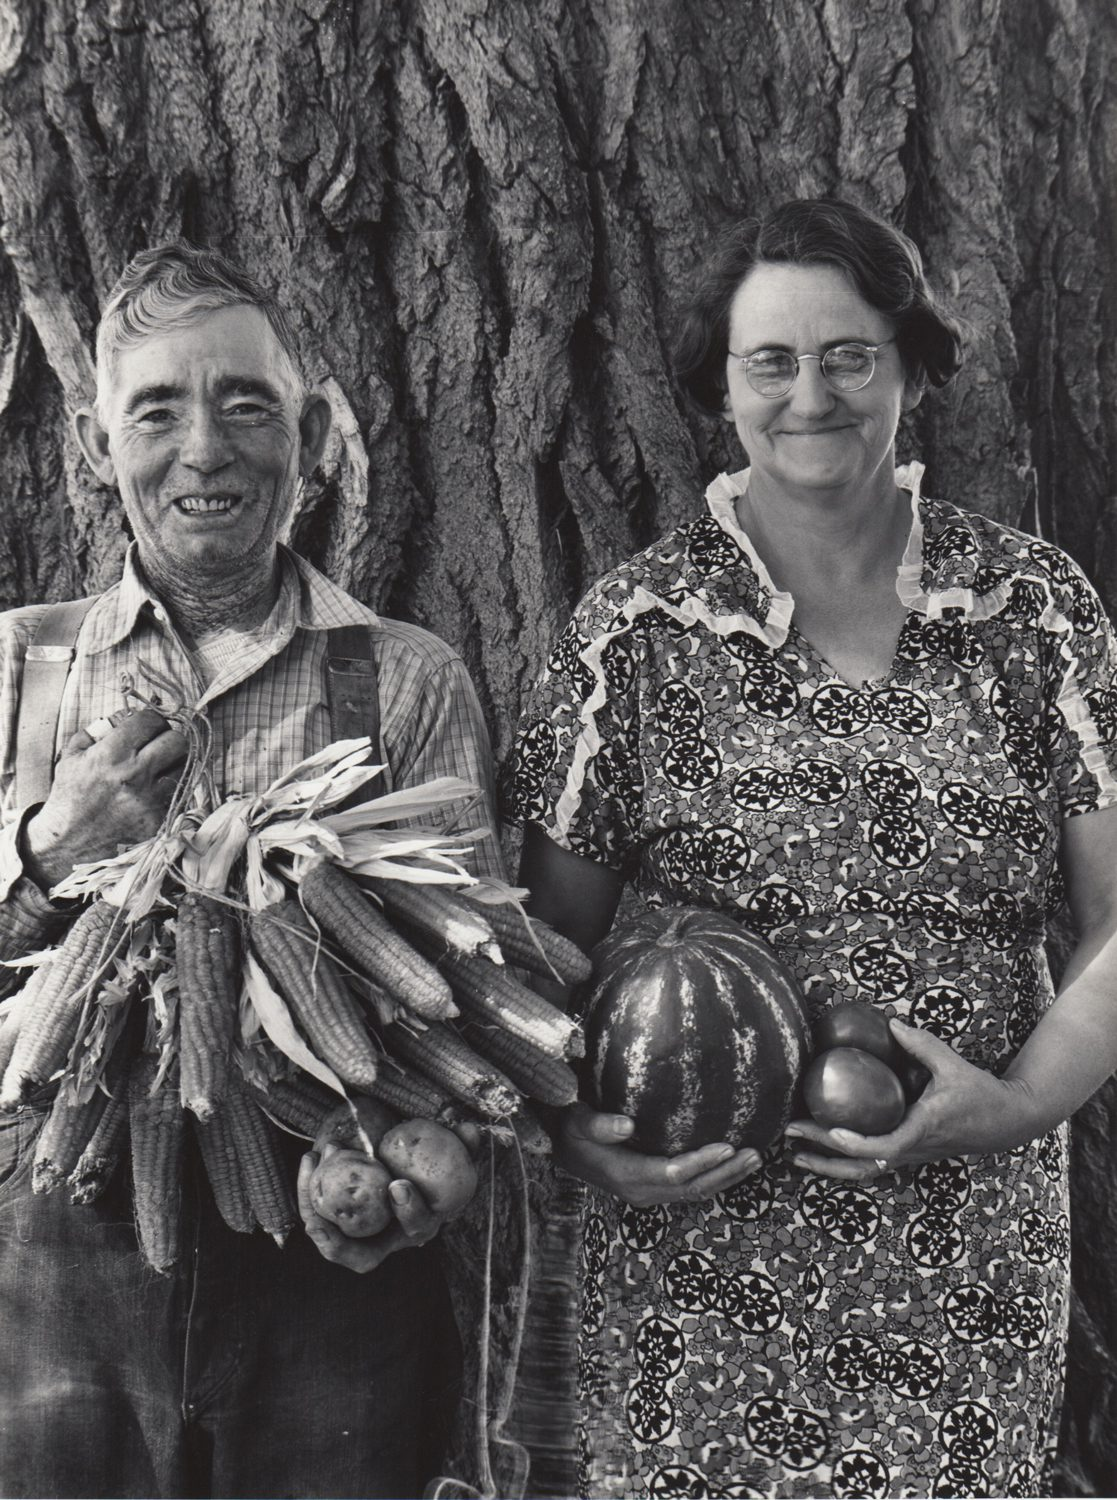 Farmer and Wife, Kersey, CO